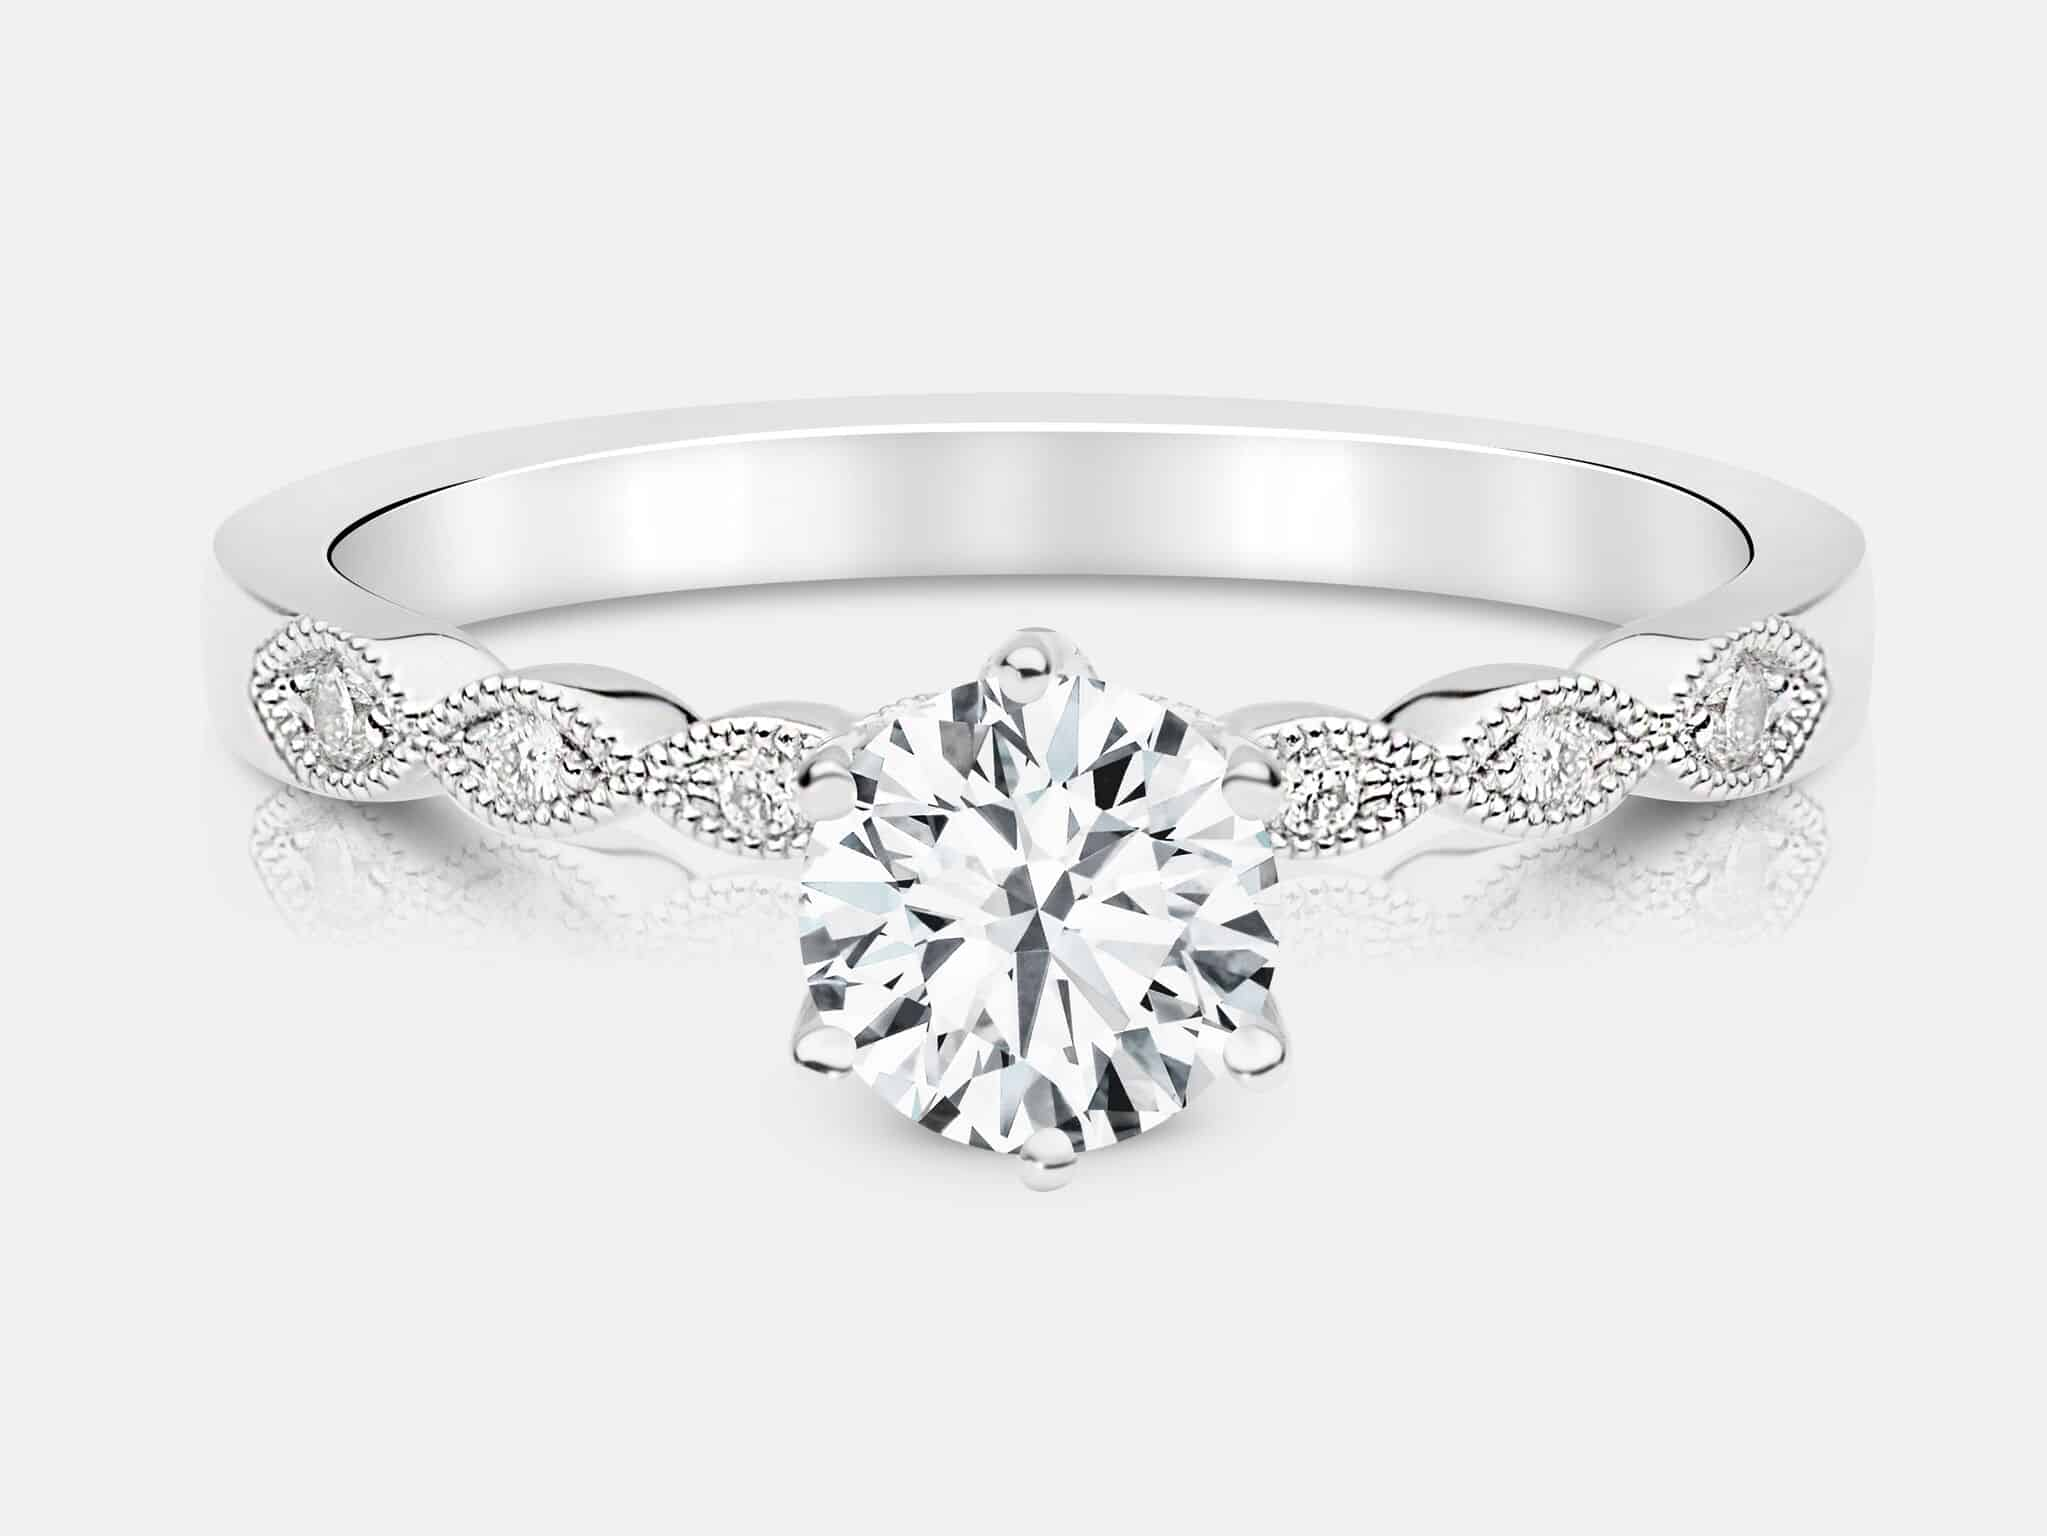 engagement tolkowsky ring cut ernest third platinum diamond princess carat d webstore rings product solitaire number jones